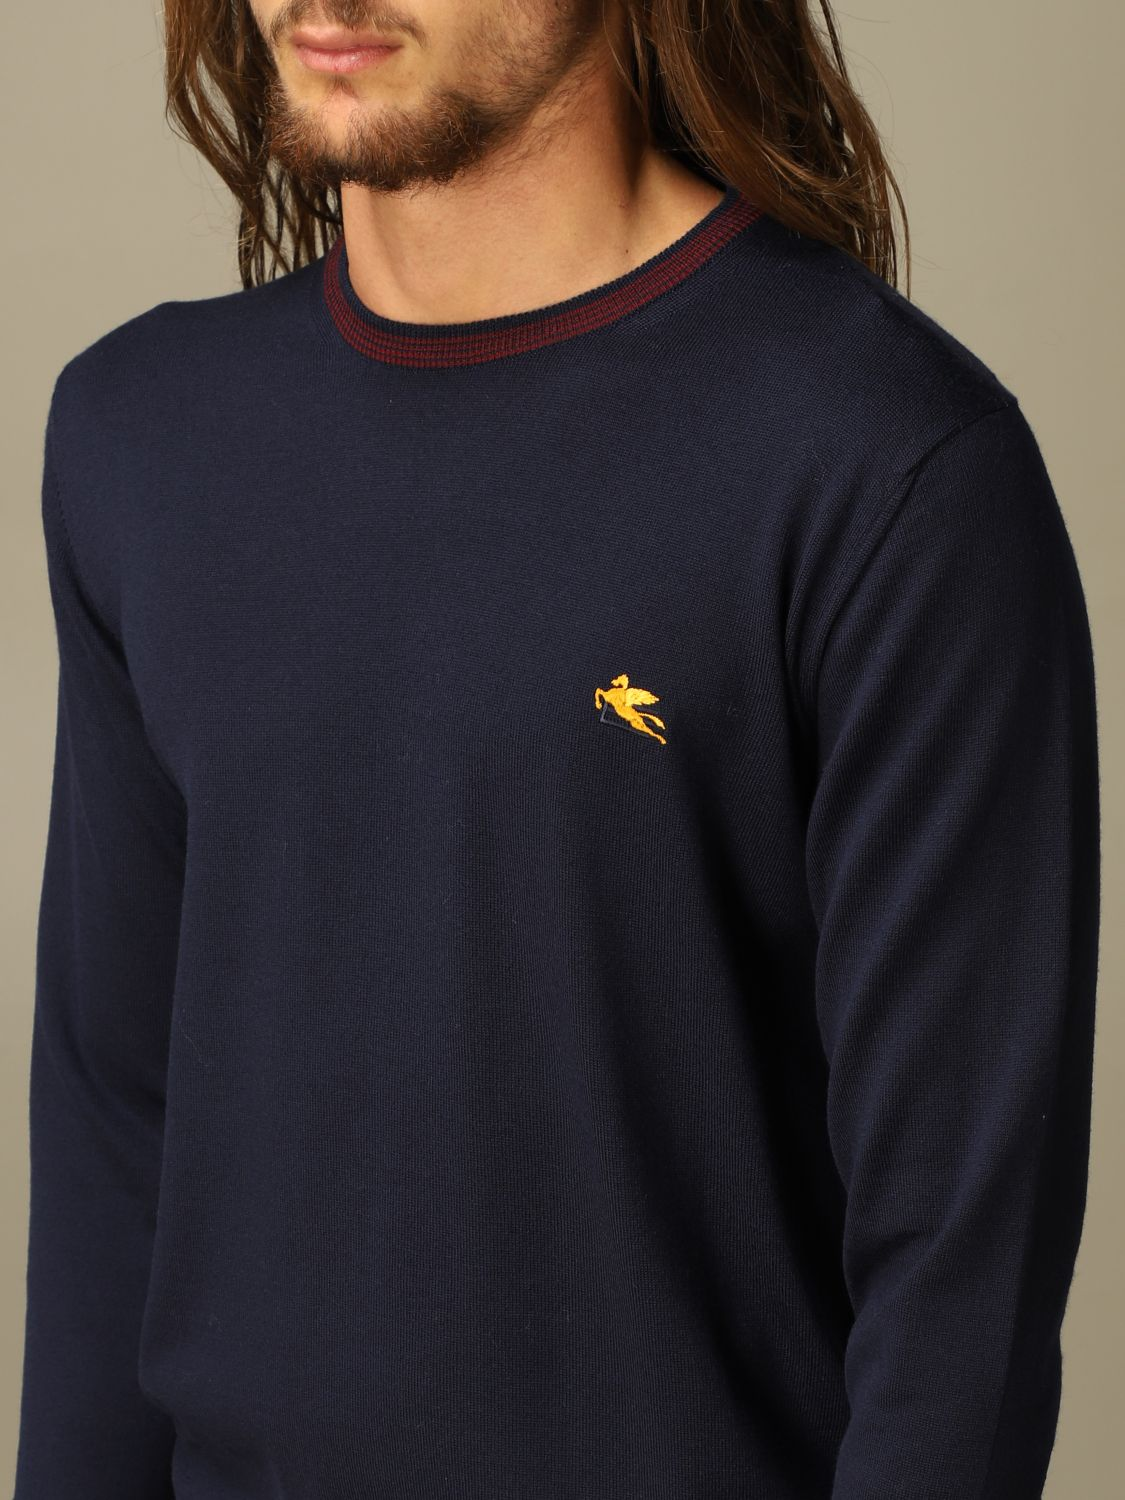 Sweater Etro: Etro wool sweater with embroidered Pegasus navy 3